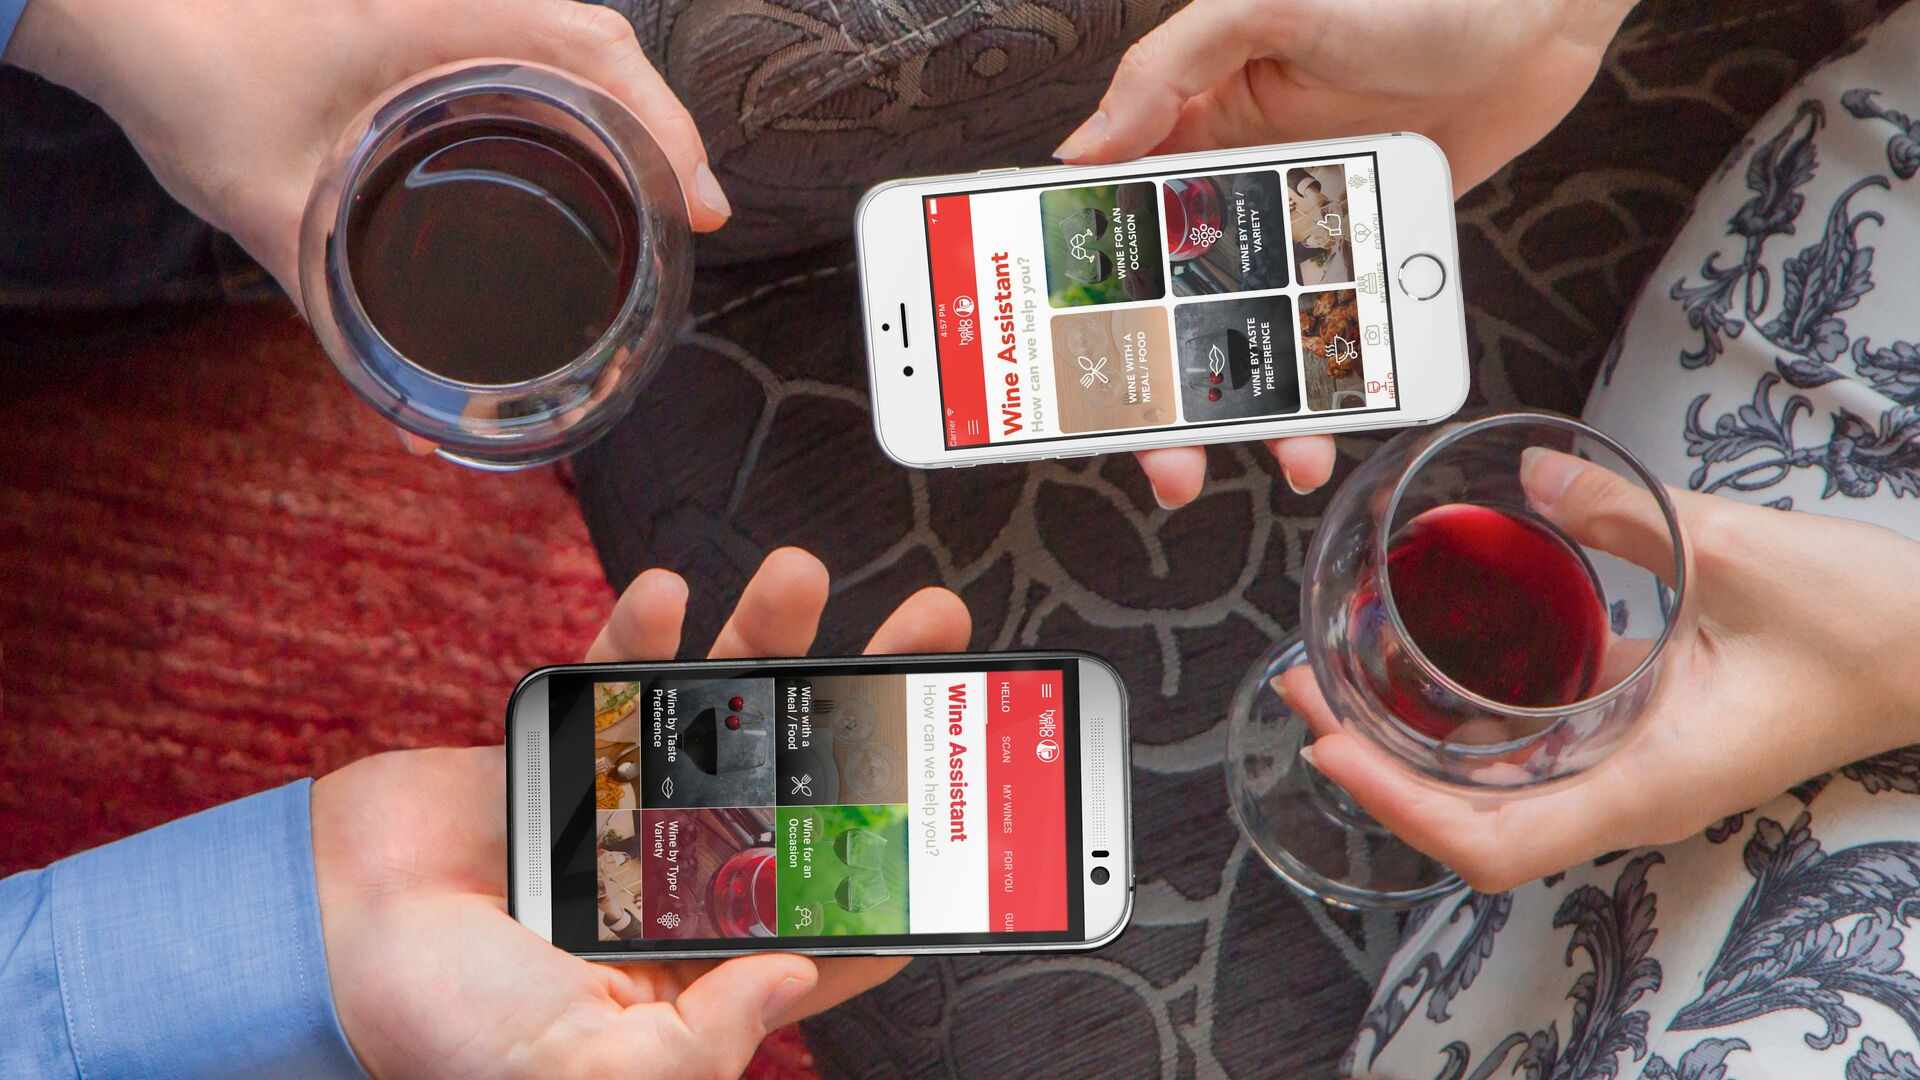 HelloVine wine app being used on an iPhone and Android smartphone.